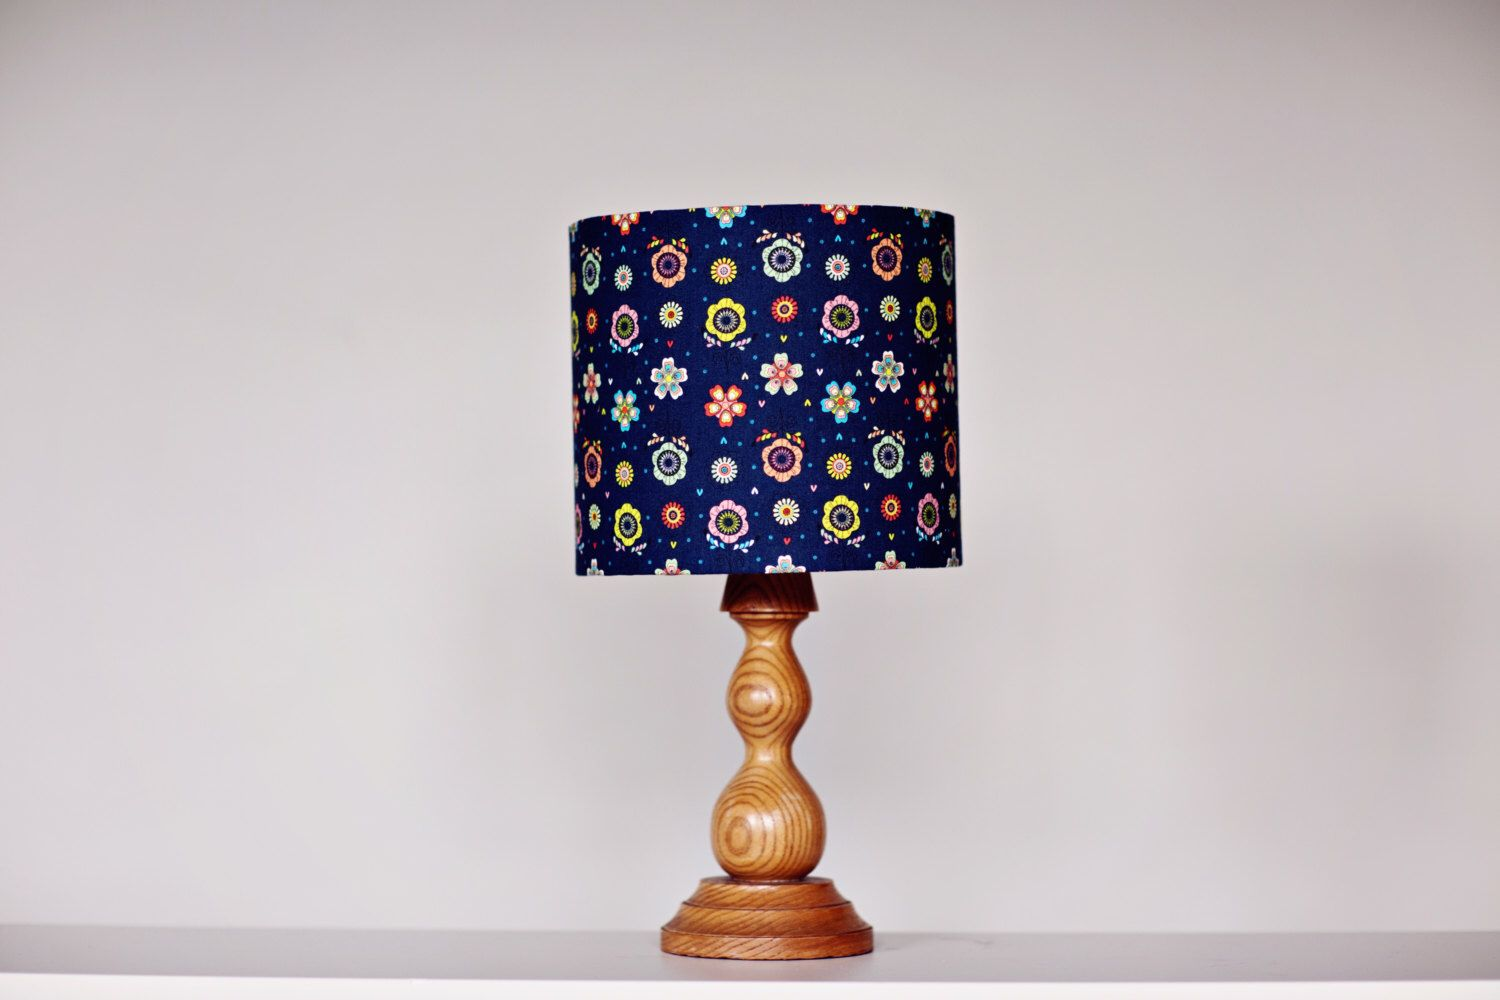 Navy Blue Lamp Shade Floral Lampshade Navy Blue Decor Bedside Lamp Home Office Mothers Day Gift Handmade Lamps Blue Lamp Shade Floral Lampshade Blue Lamp